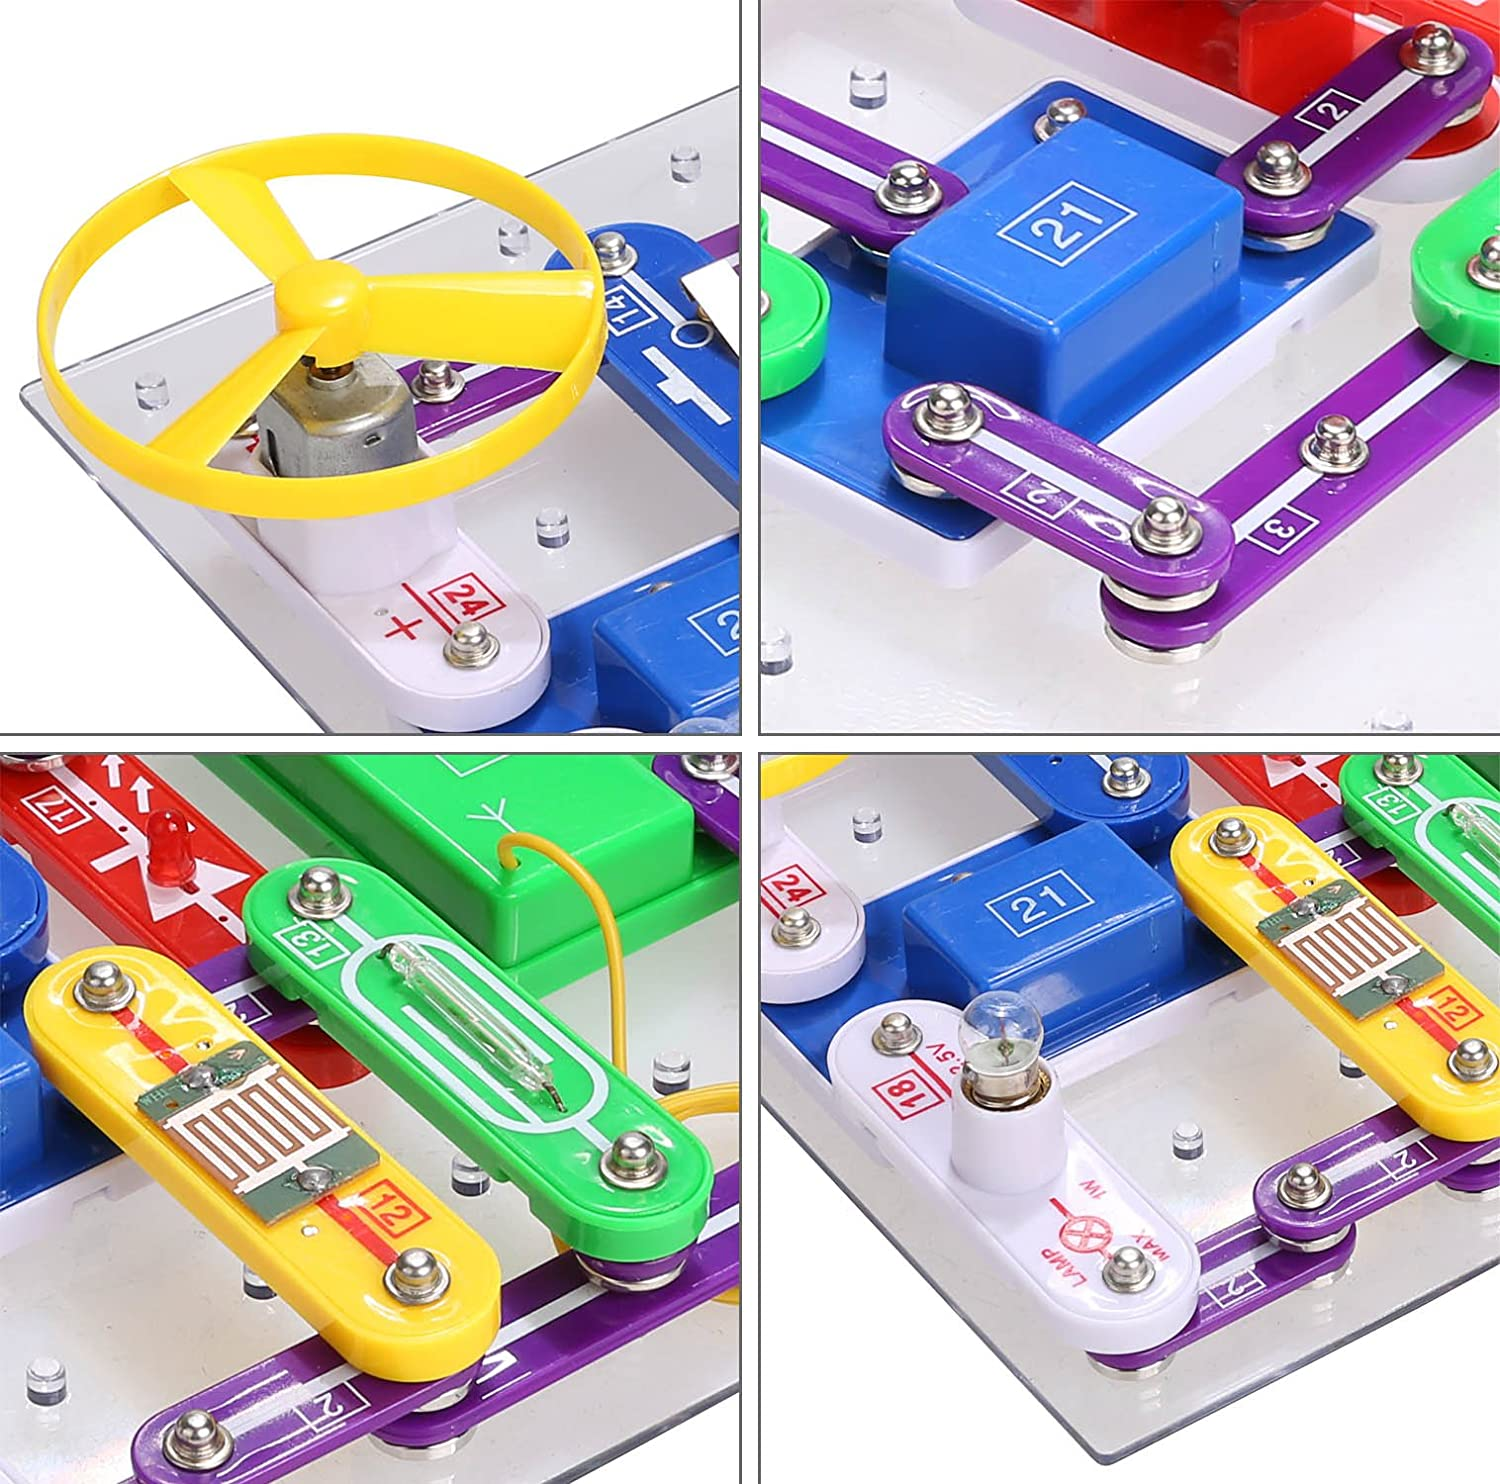 Arshiner 335 Electronics Discovery Kit Diy Electric Electronic Snap Circuits Pro Handson Curriculum Block Educational Science Toy For Kids Toys Games